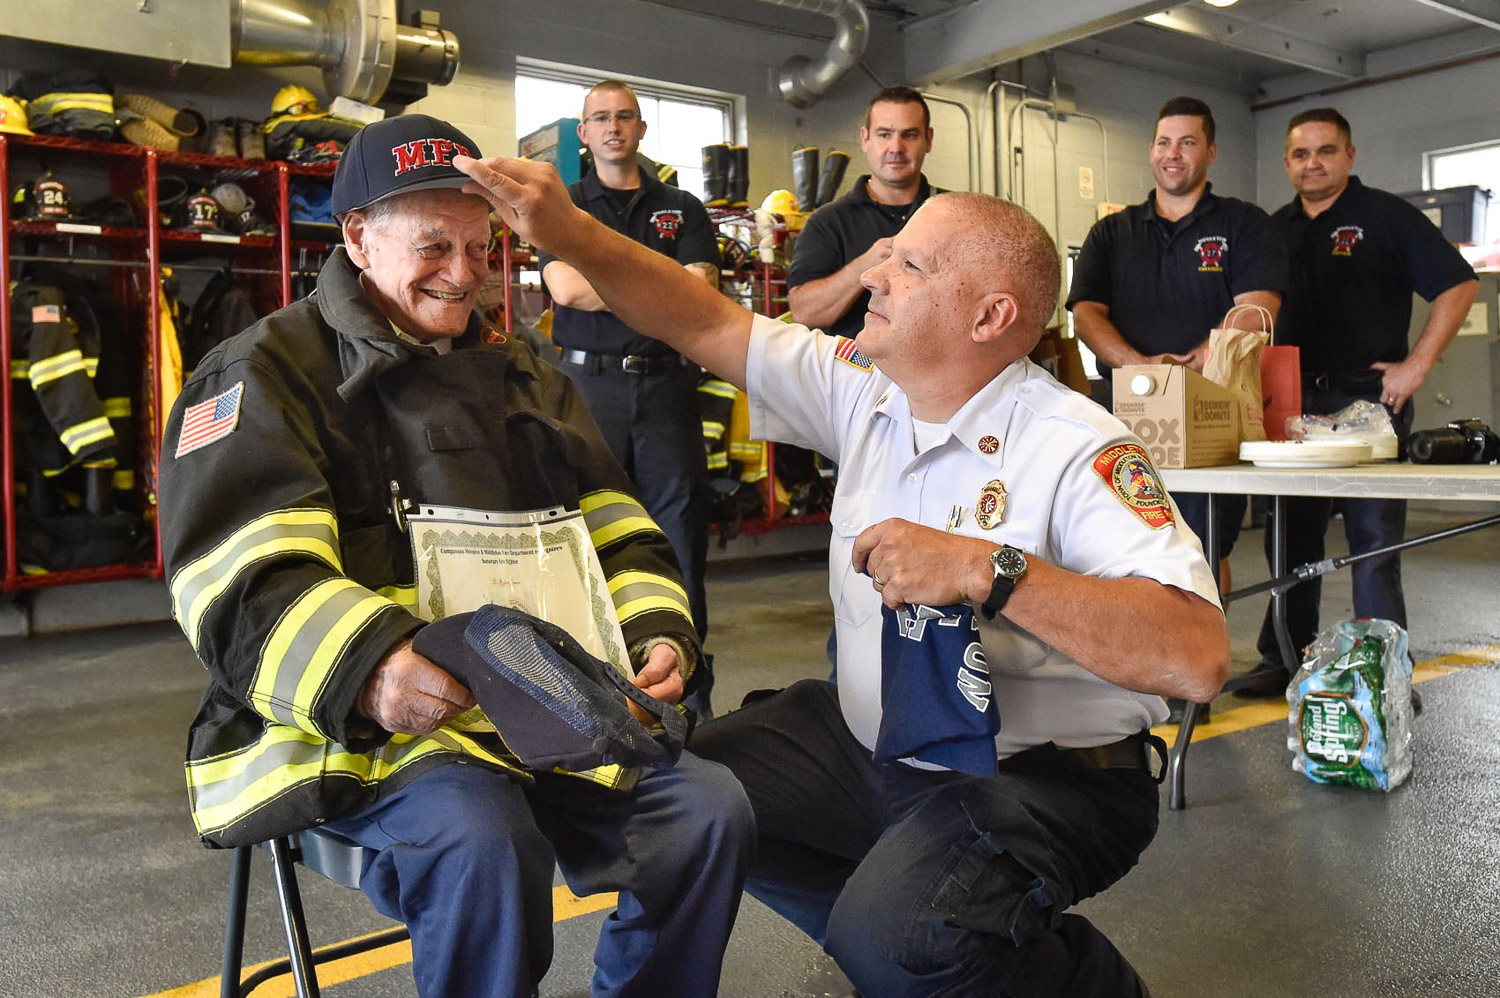 4 of 9 Middleton Fire Chief Thomas Martinuk put a brand new Medford Fire hat on Bobby Jensen, a honorary Middleton firefighter during his visit at the Middleton Fire Department, Thursday, Sept. 14, 2017. [Wicked Local Photo / David Sokol]